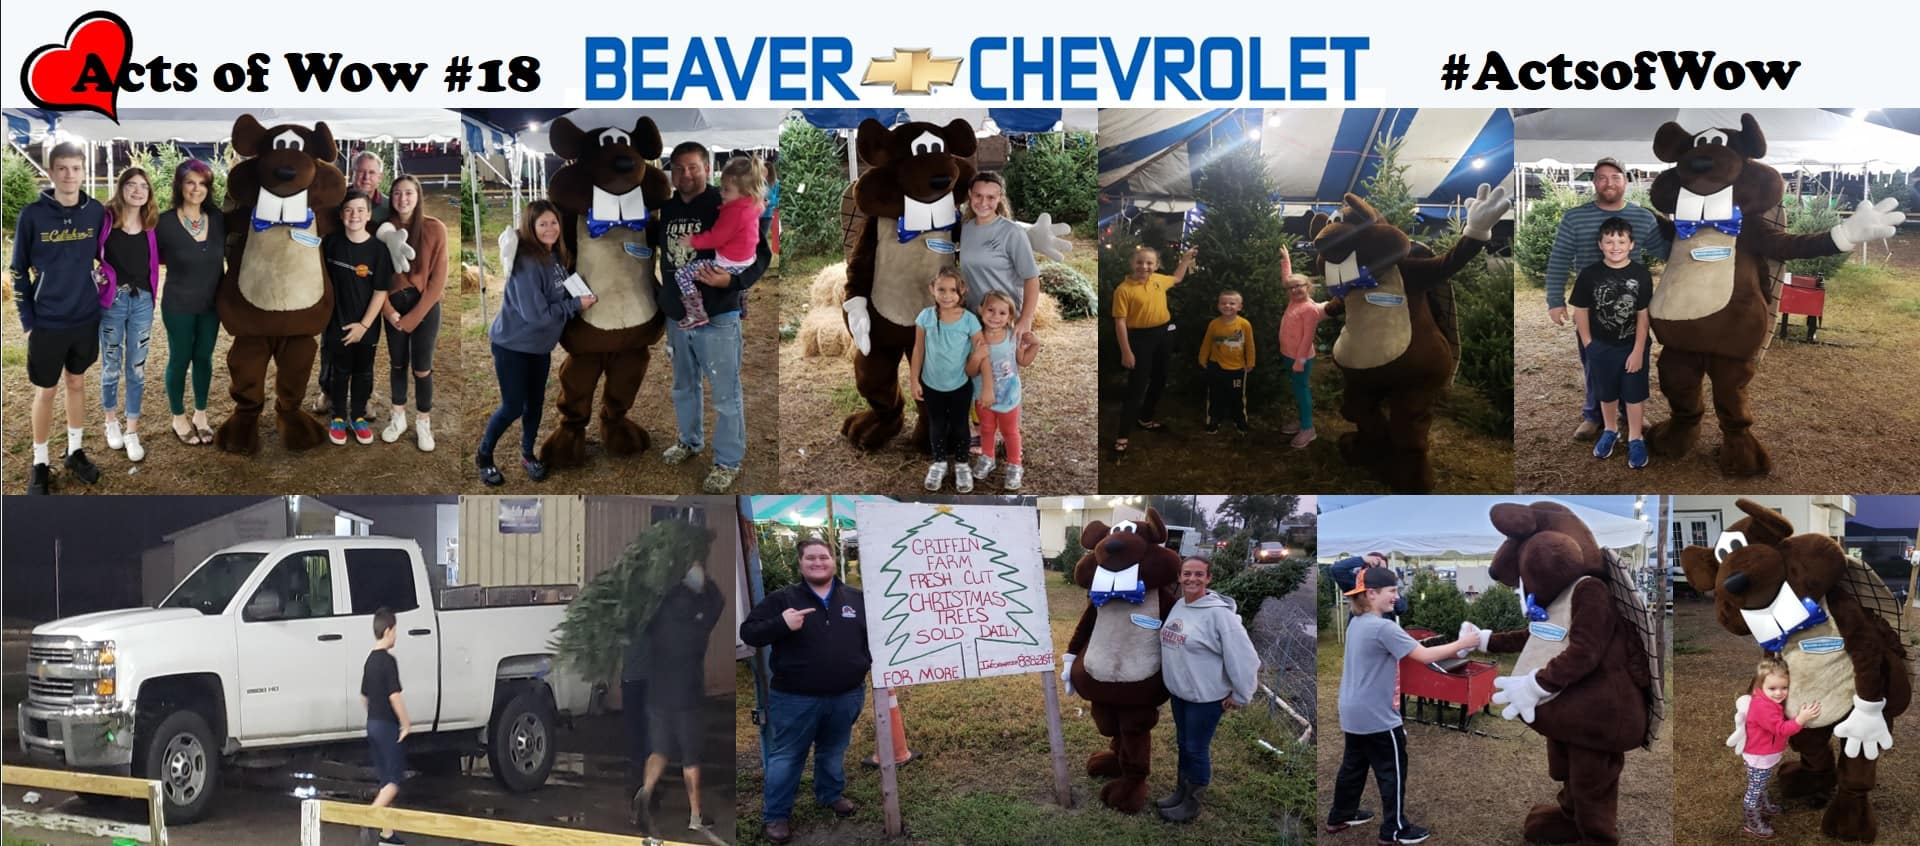 Acts of Wow #18 Collage Beaver Chevrolet Jacksonville Florida